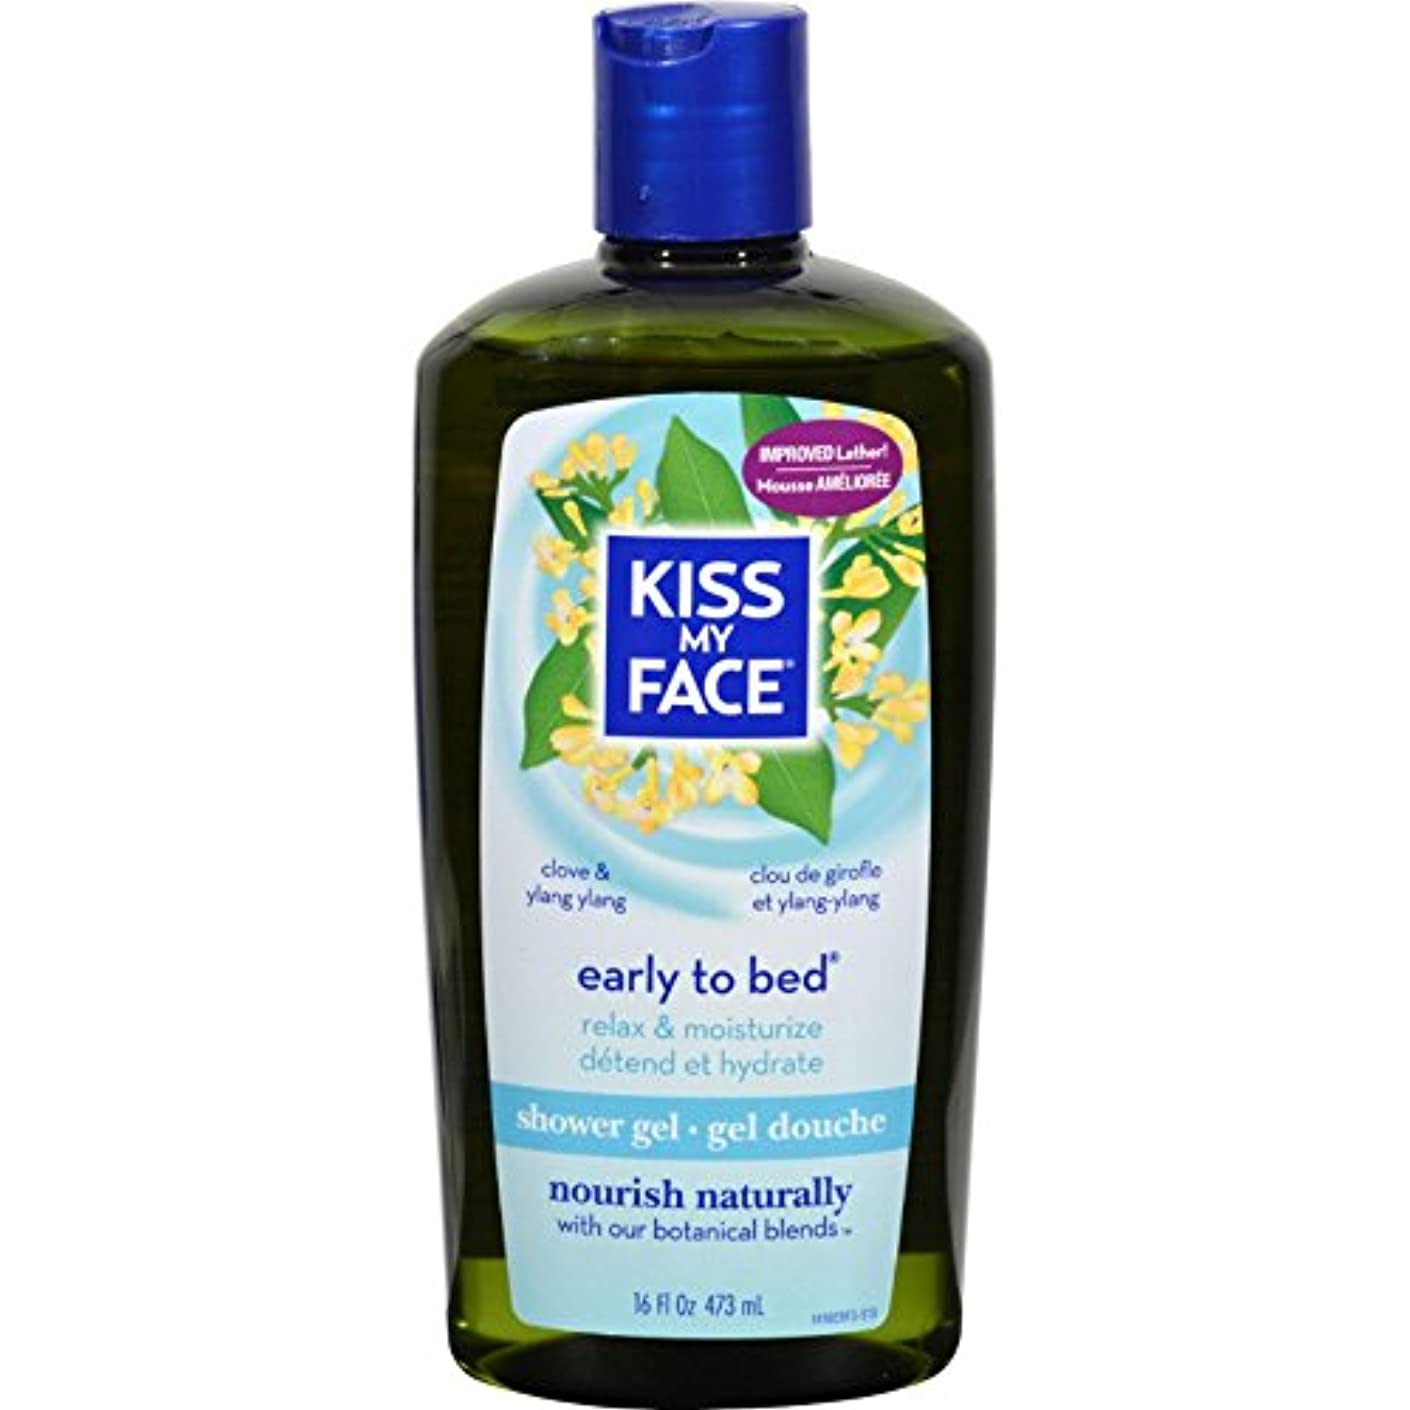 Bath and Shower Gel Early to Bed Clove and Ylang Ylang - 16 fl oz by Kiss My Face